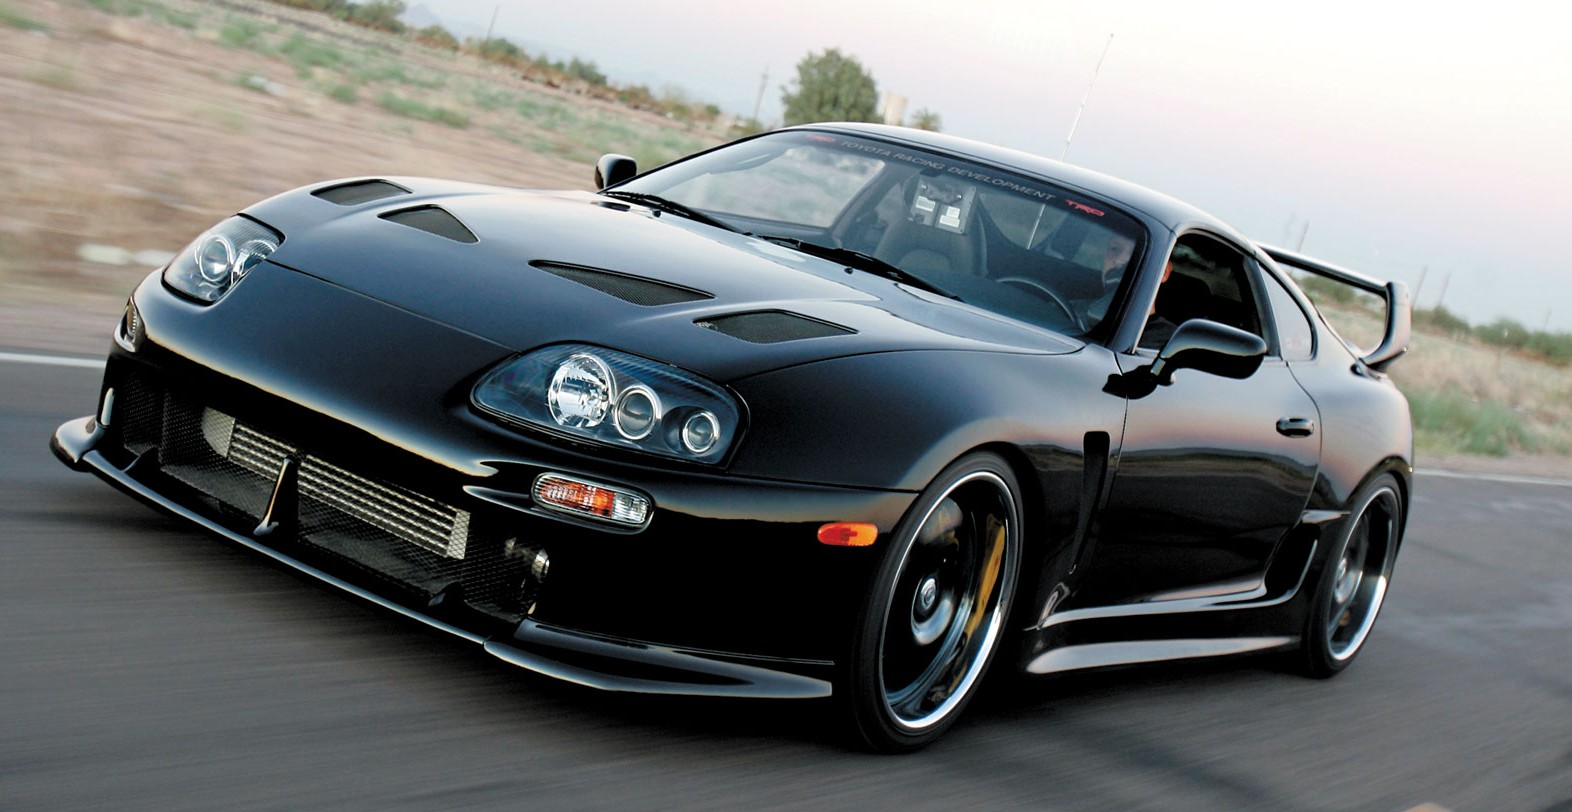 toyota supra name likely for resurrection photos 1 of 3. Black Bedroom Furniture Sets. Home Design Ideas